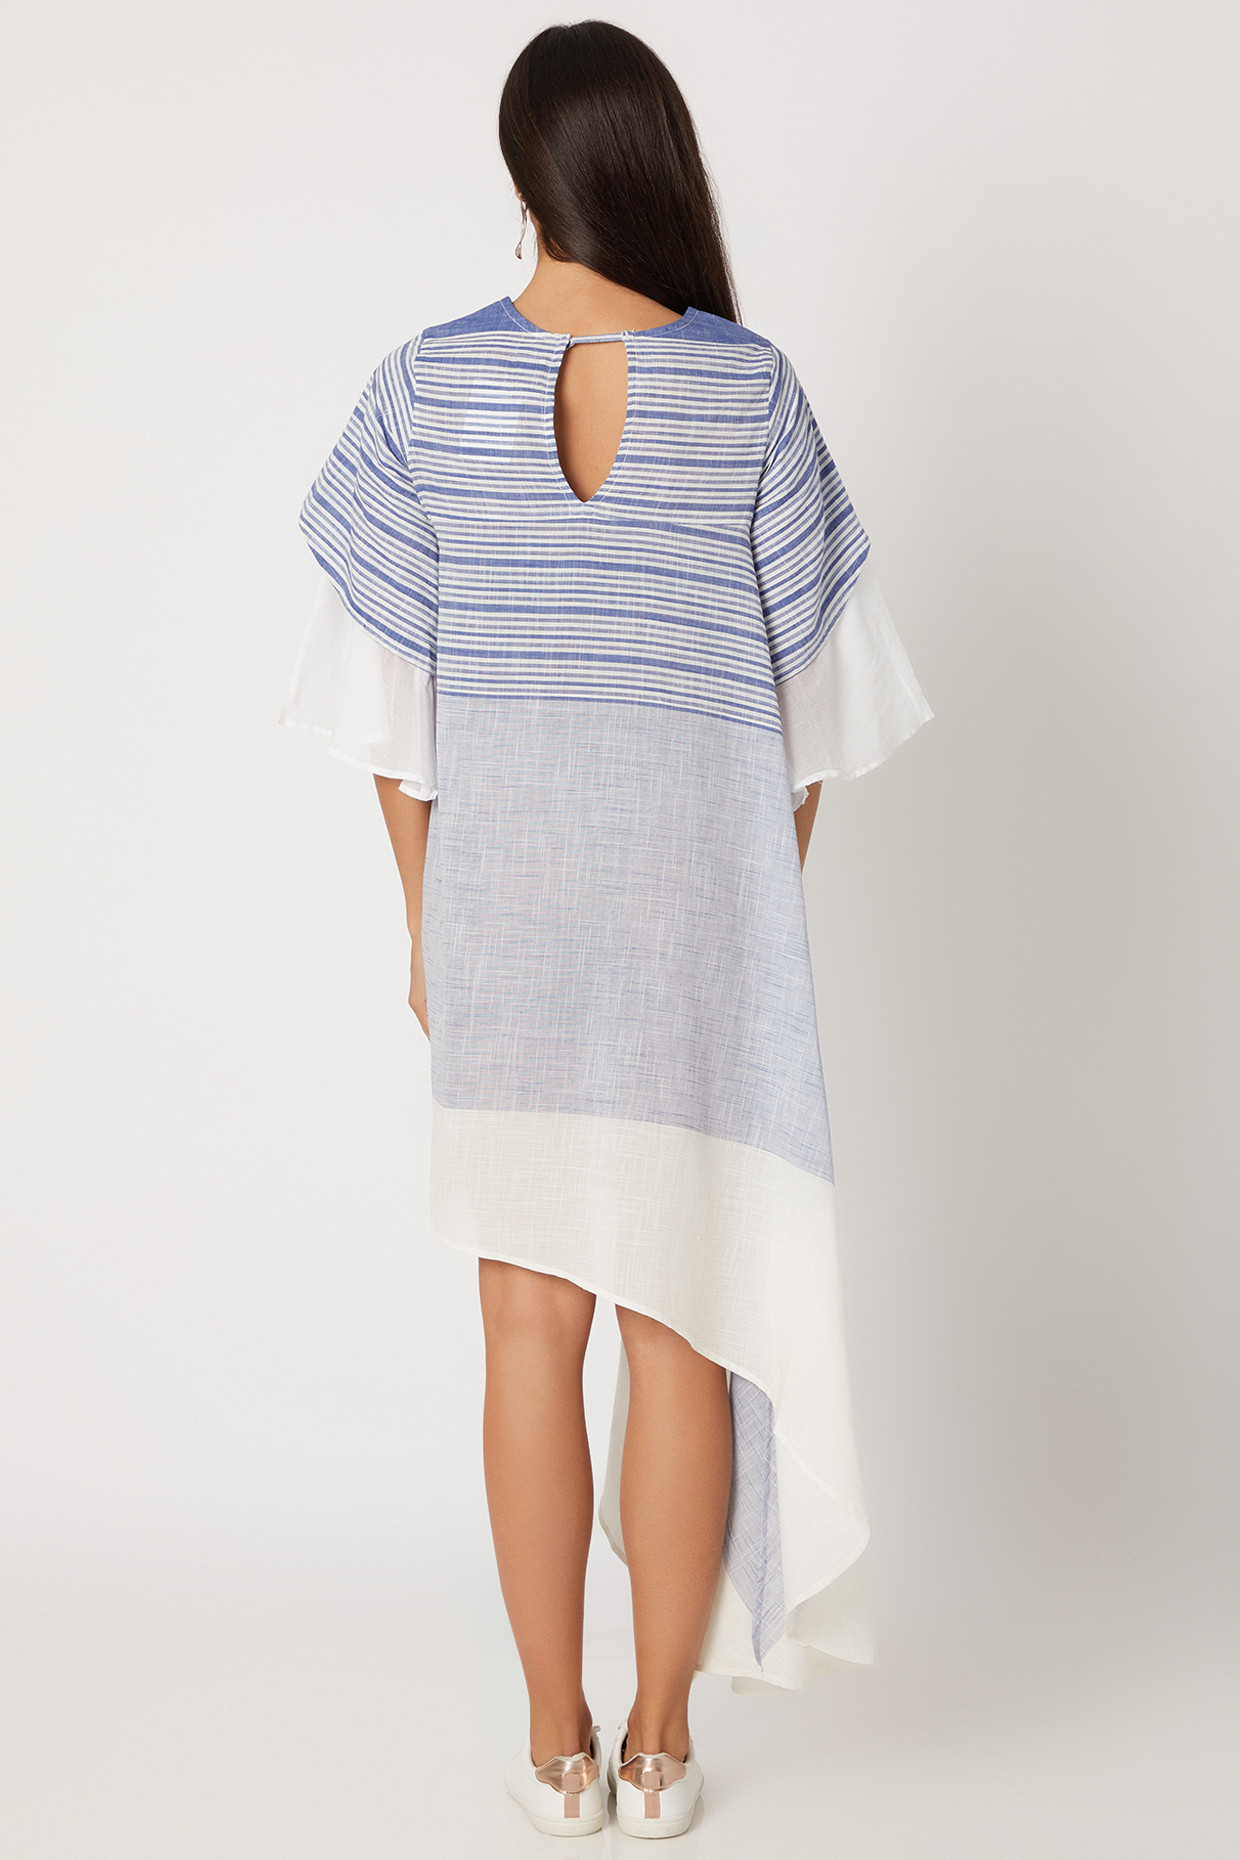 Blue Cotton Stripe Asymmetric Dress With Bell sleeves by Avadh